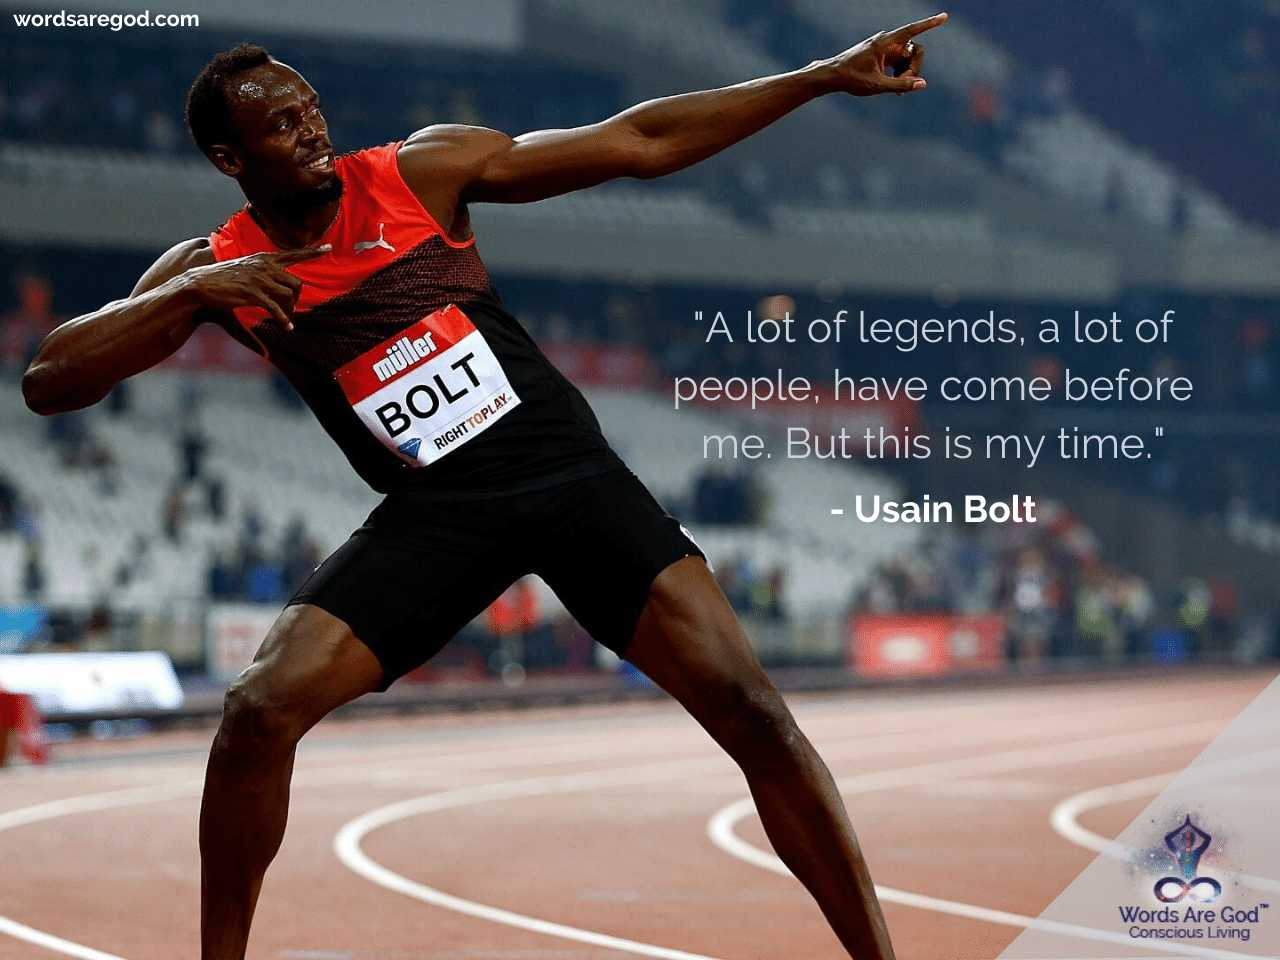 Usain Bolt Quotes Life Quotes In Hindi Inspirational Quotes Image Image Of Love Quotes Motivational Quotes About Life